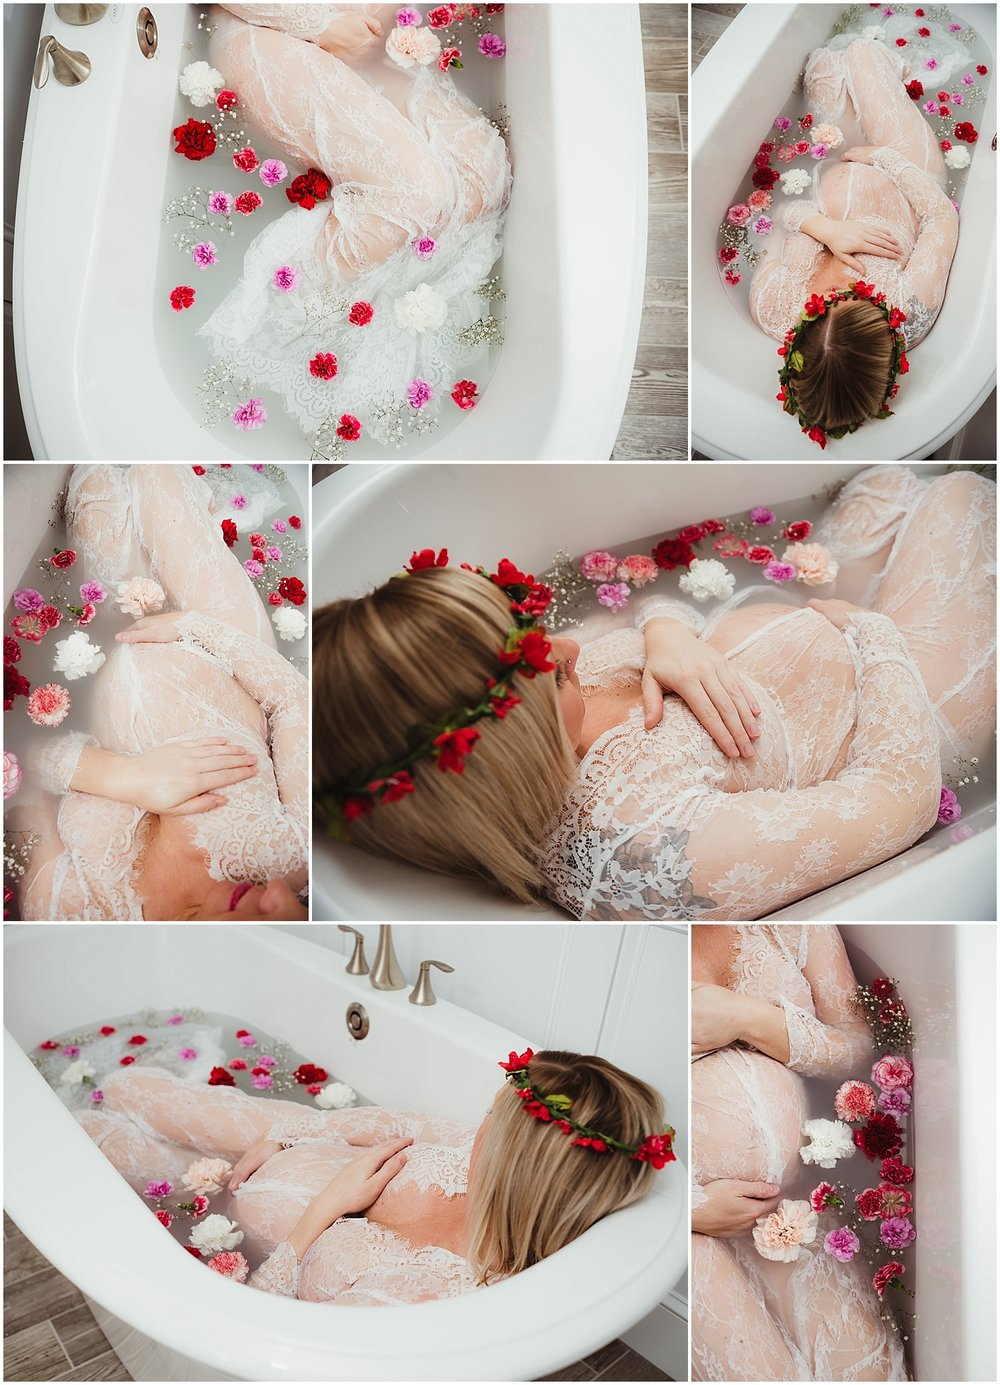 Milk Bath Maternity Session by Maternity Photographer in Luzerne County